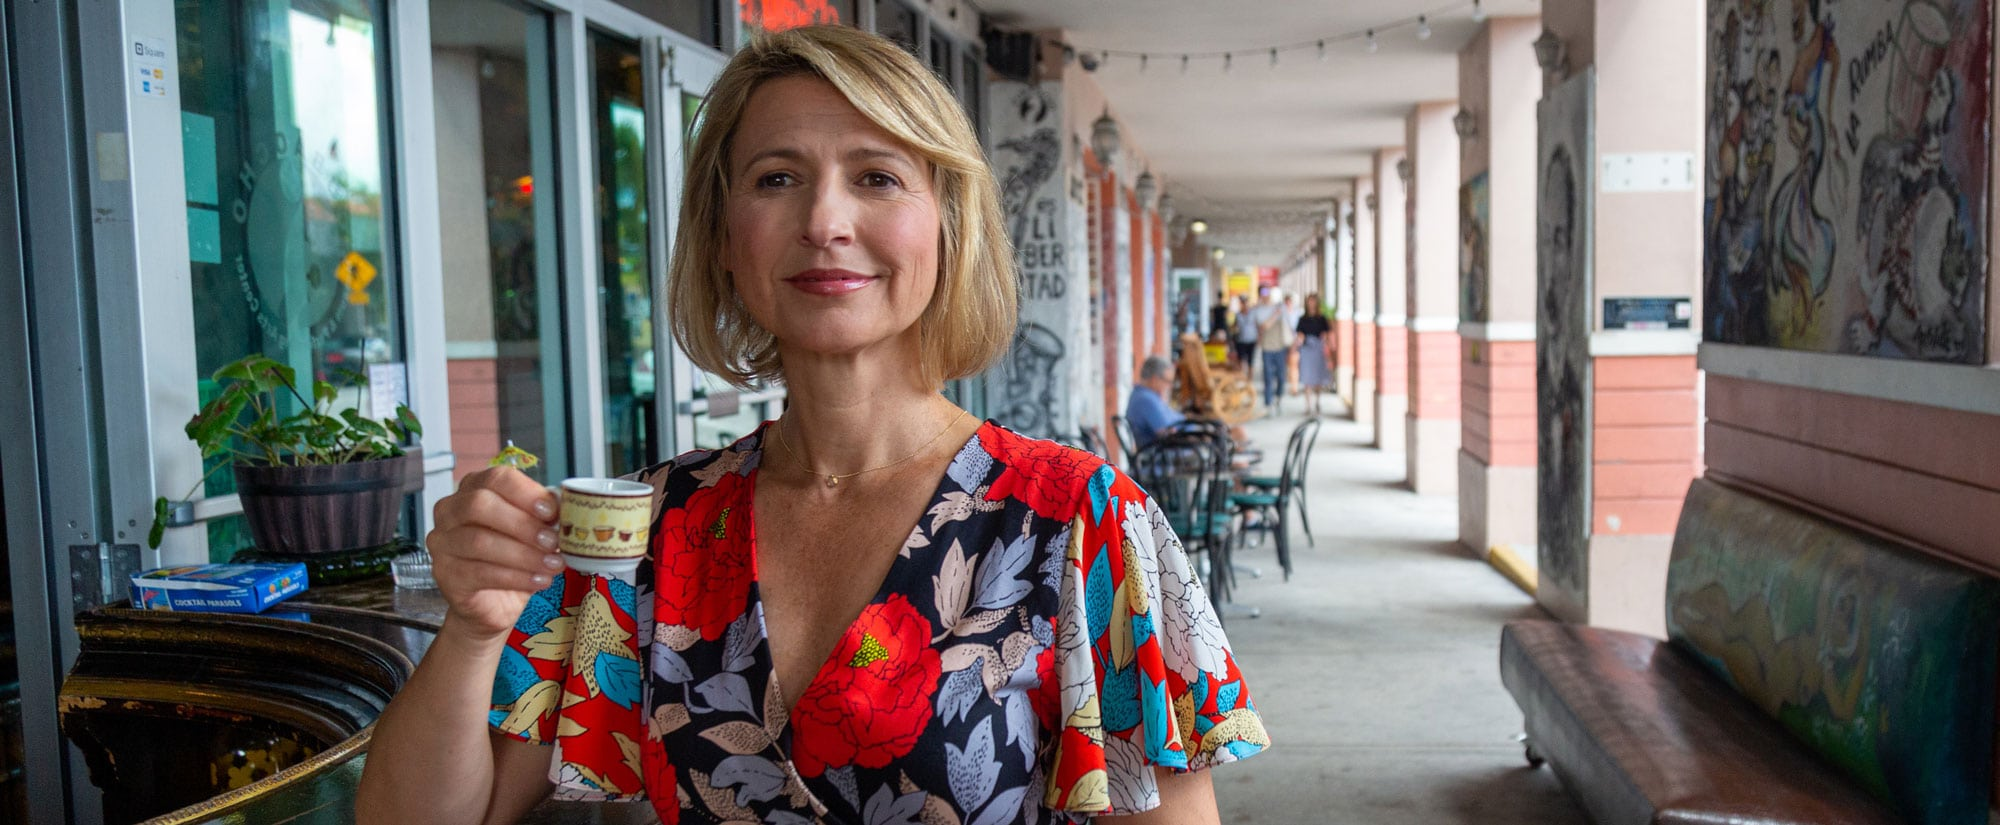 Places To Love - Miami - Samantha Brown